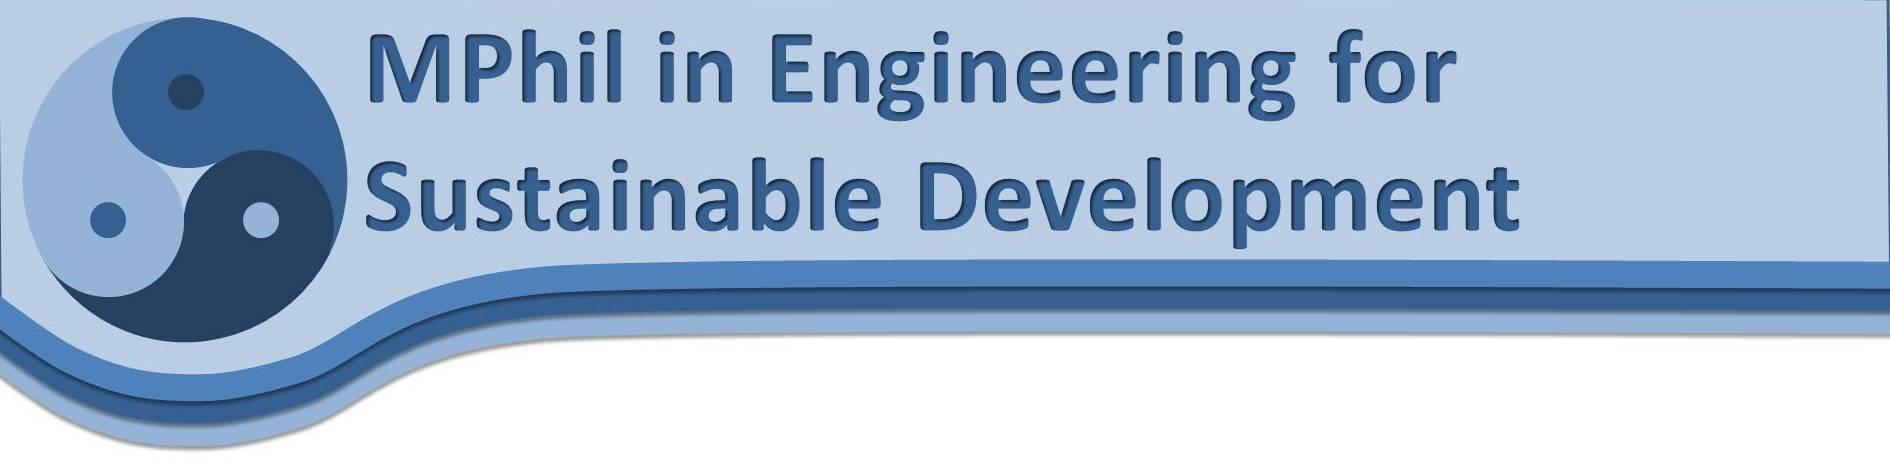 YouTube Video ESD MPhil- Global challenges, engineering solutions